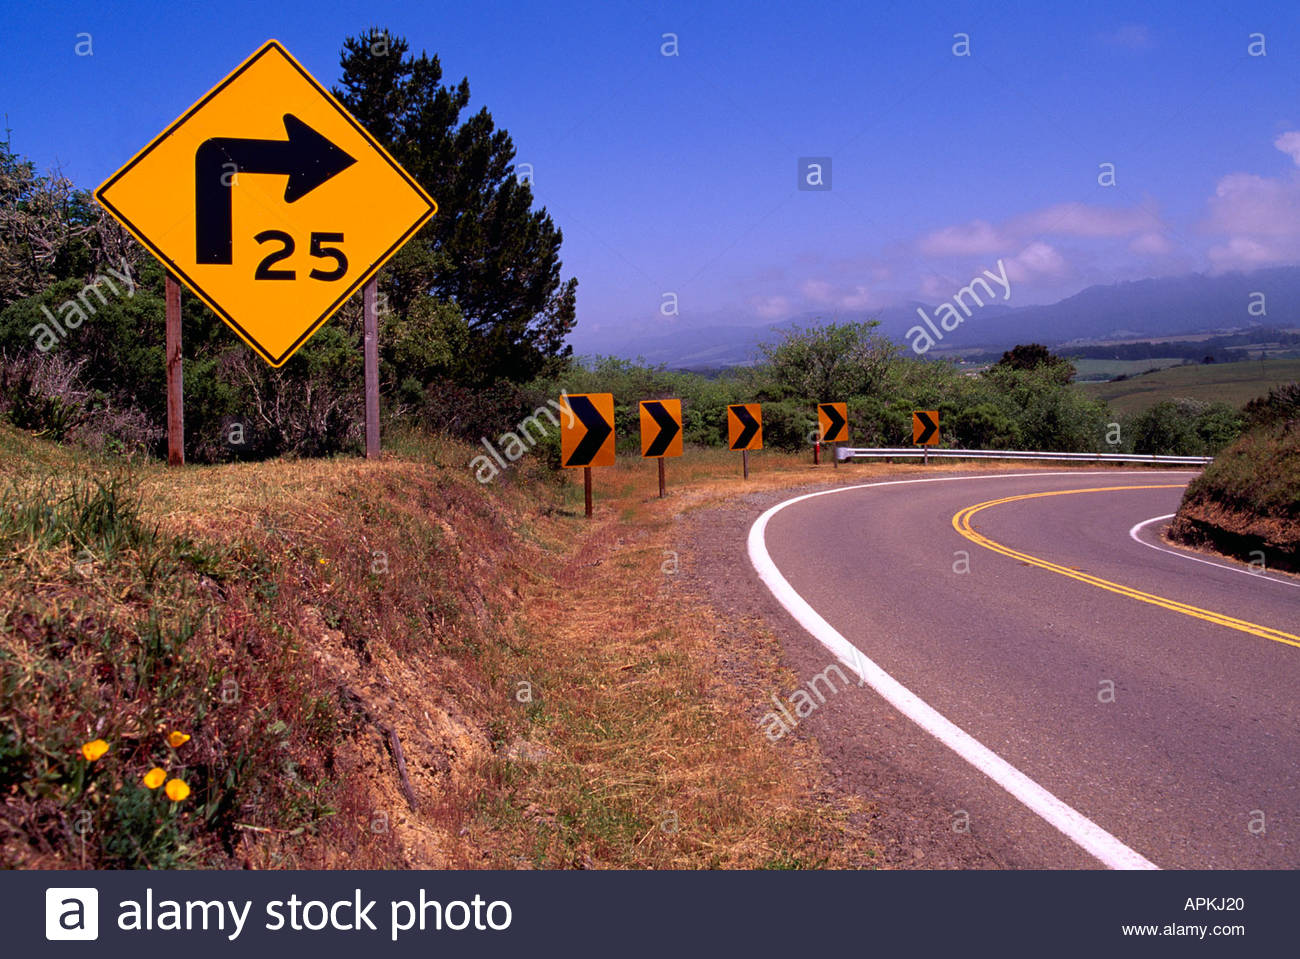 speed-limit-road-sign-warning-drivers-of-sharp-right-curve-along-pacific-APKJ20.jpg